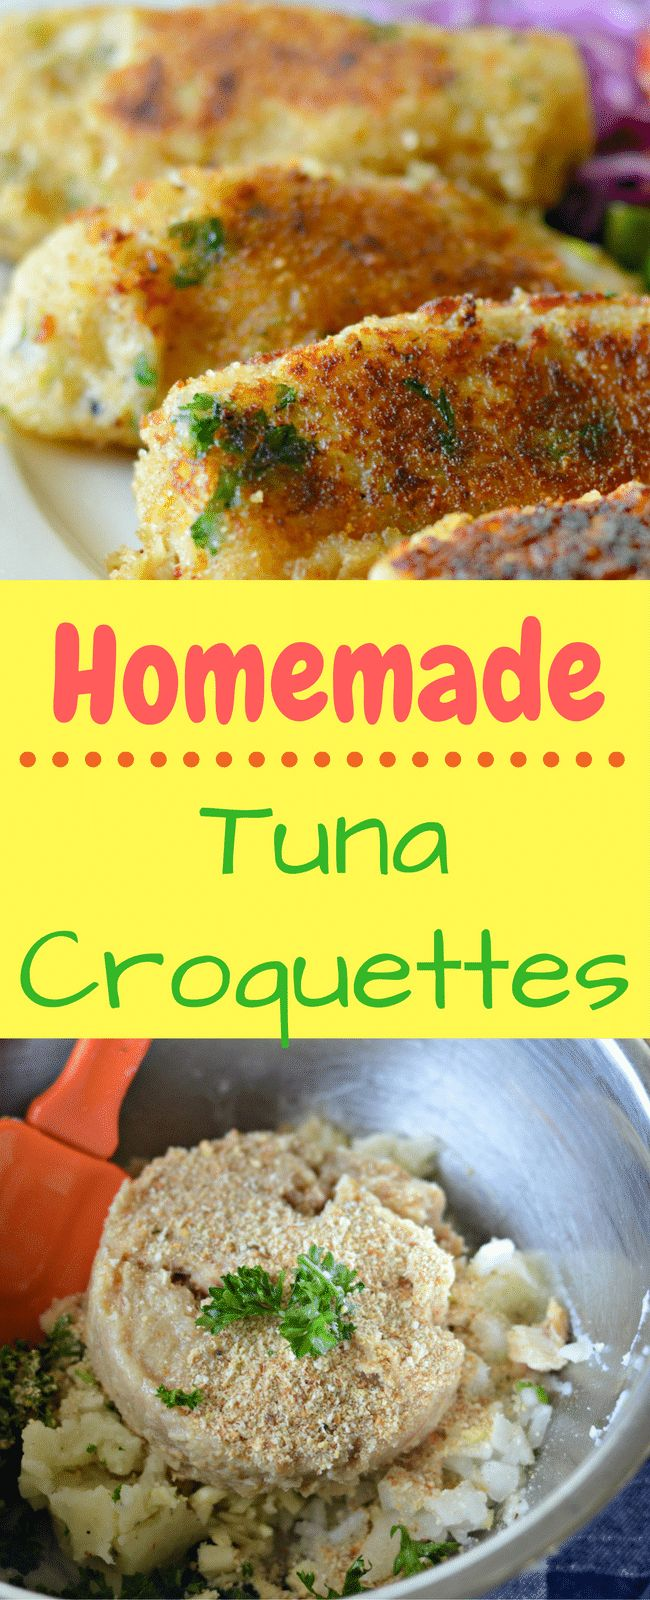 This homemade tuna croquettes recipe is easy and affordable to make. You will love how all of the flavors combine to make a delicious meals. OnlyAlbacore AD @bumblebeefoods